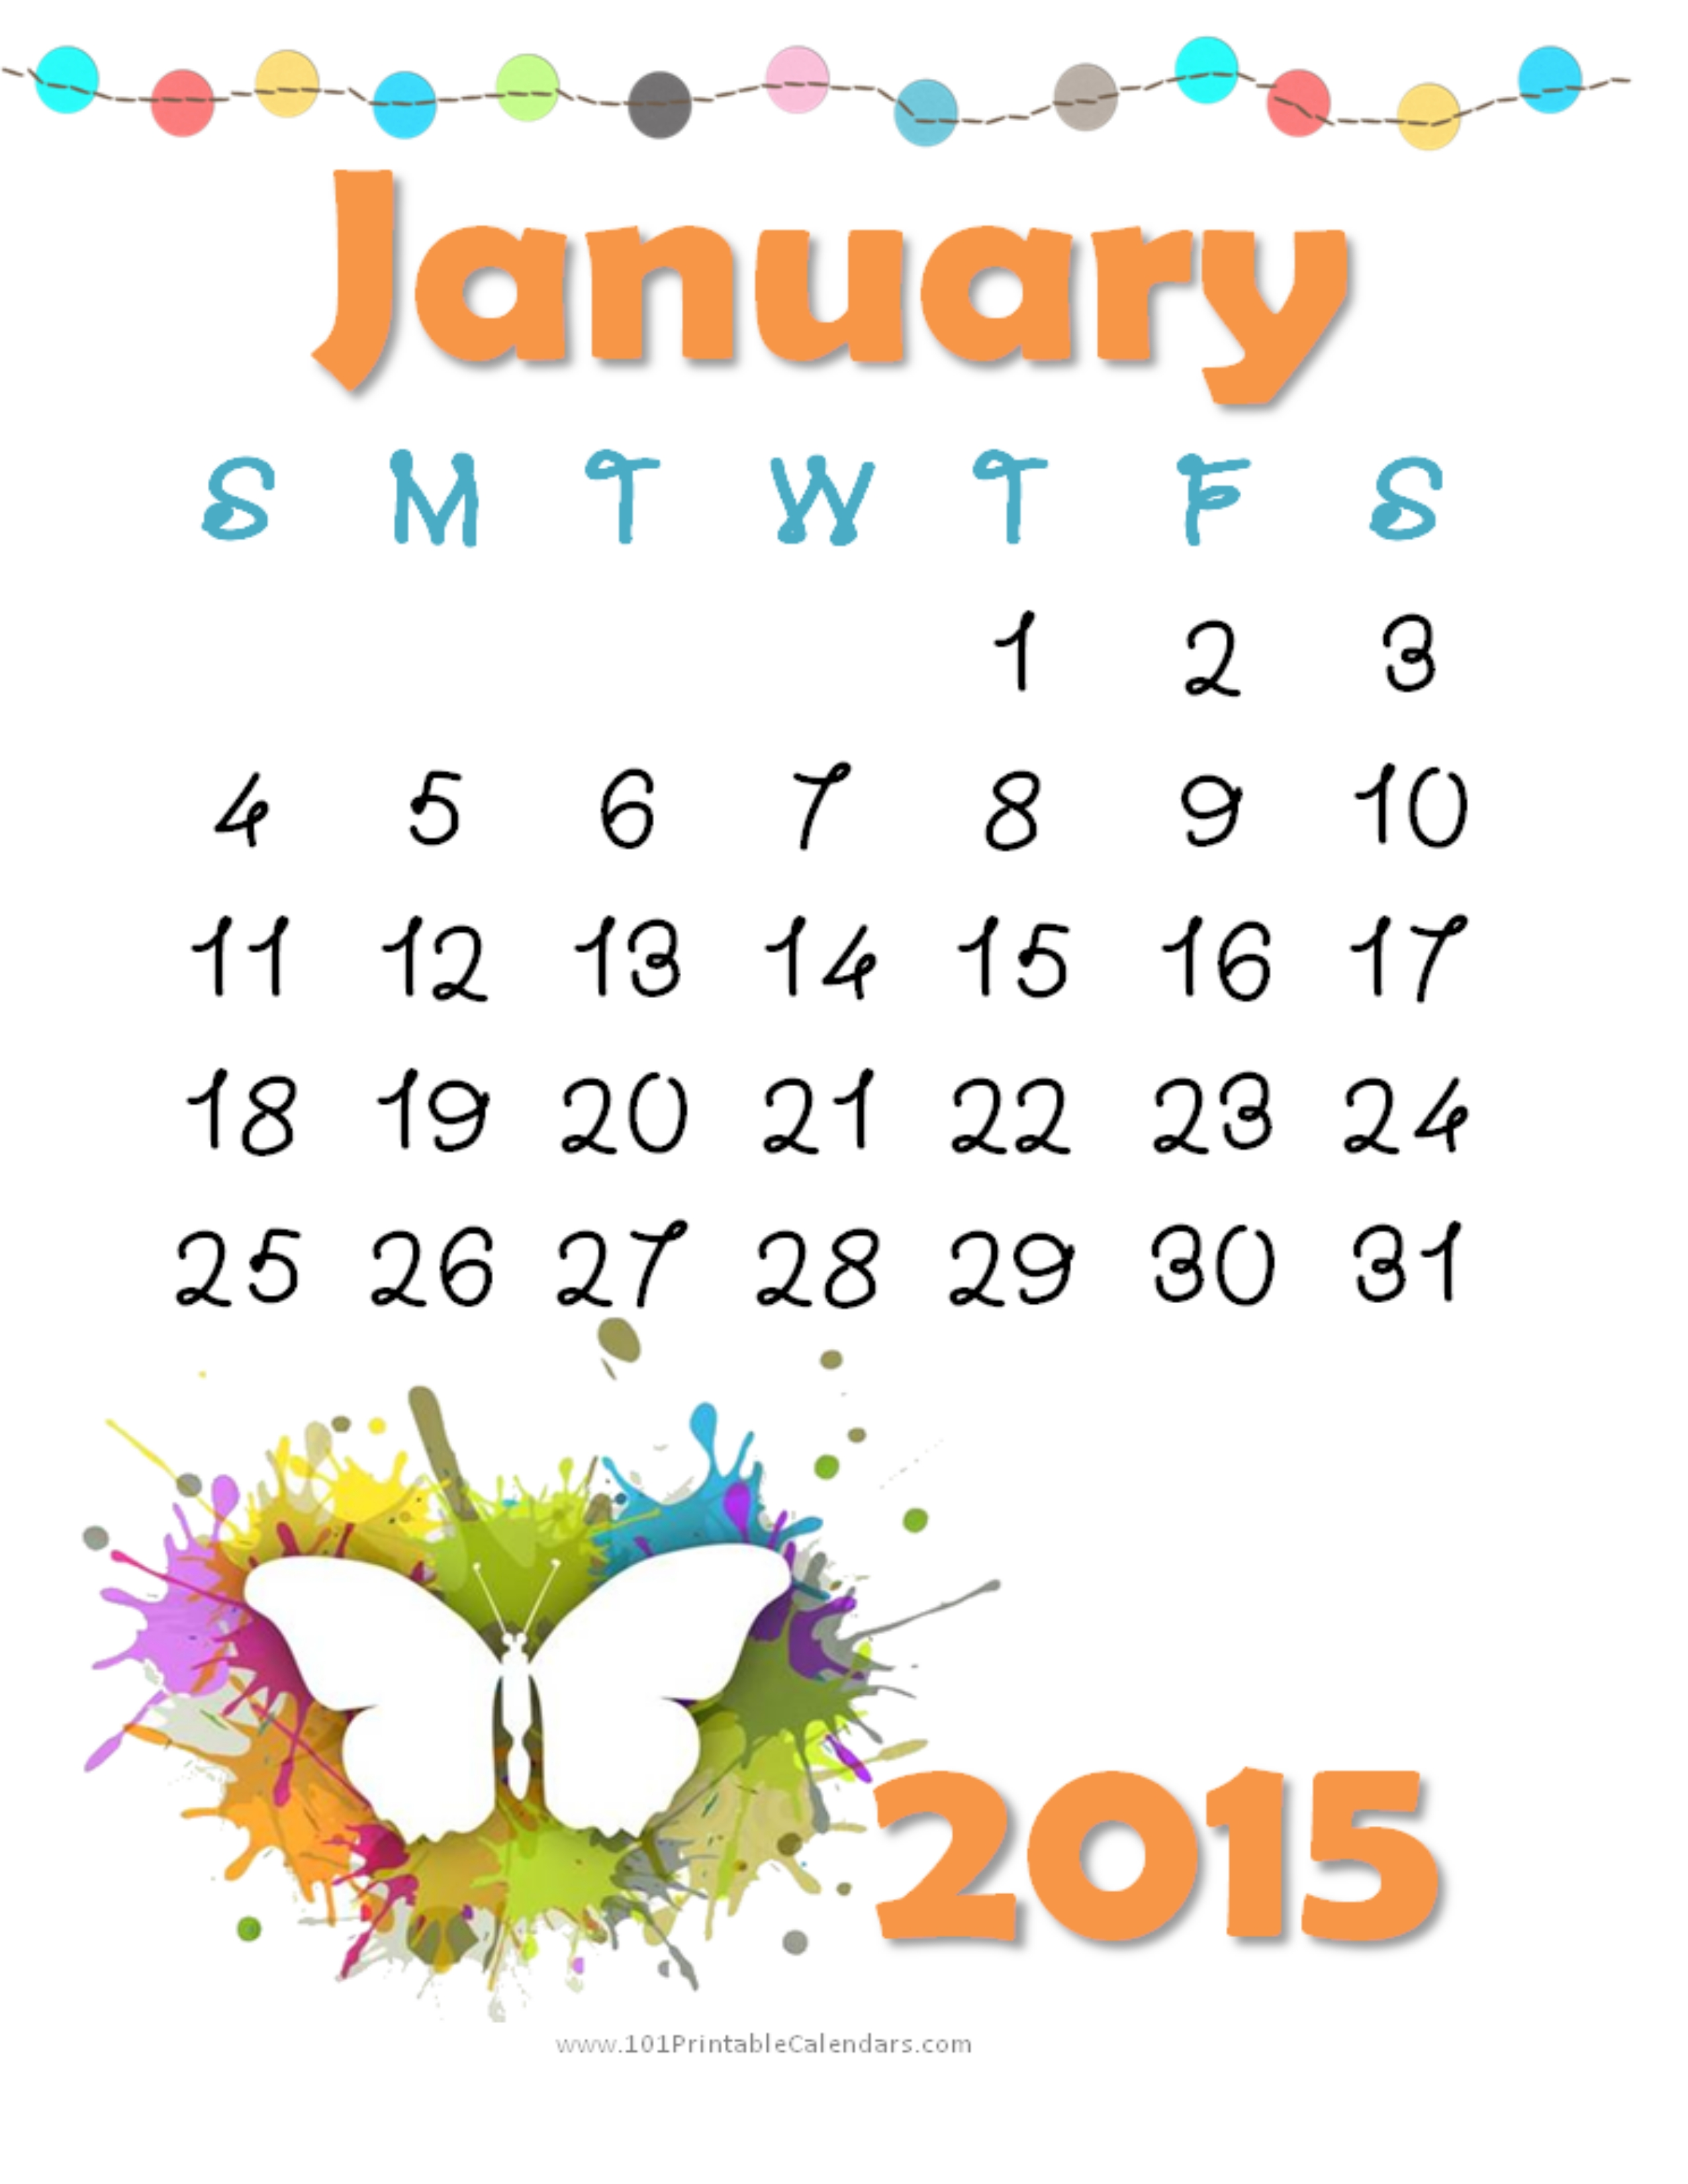 January 2015 calendar clipart picture download January 2015 Clipart - Clipart Kid picture download